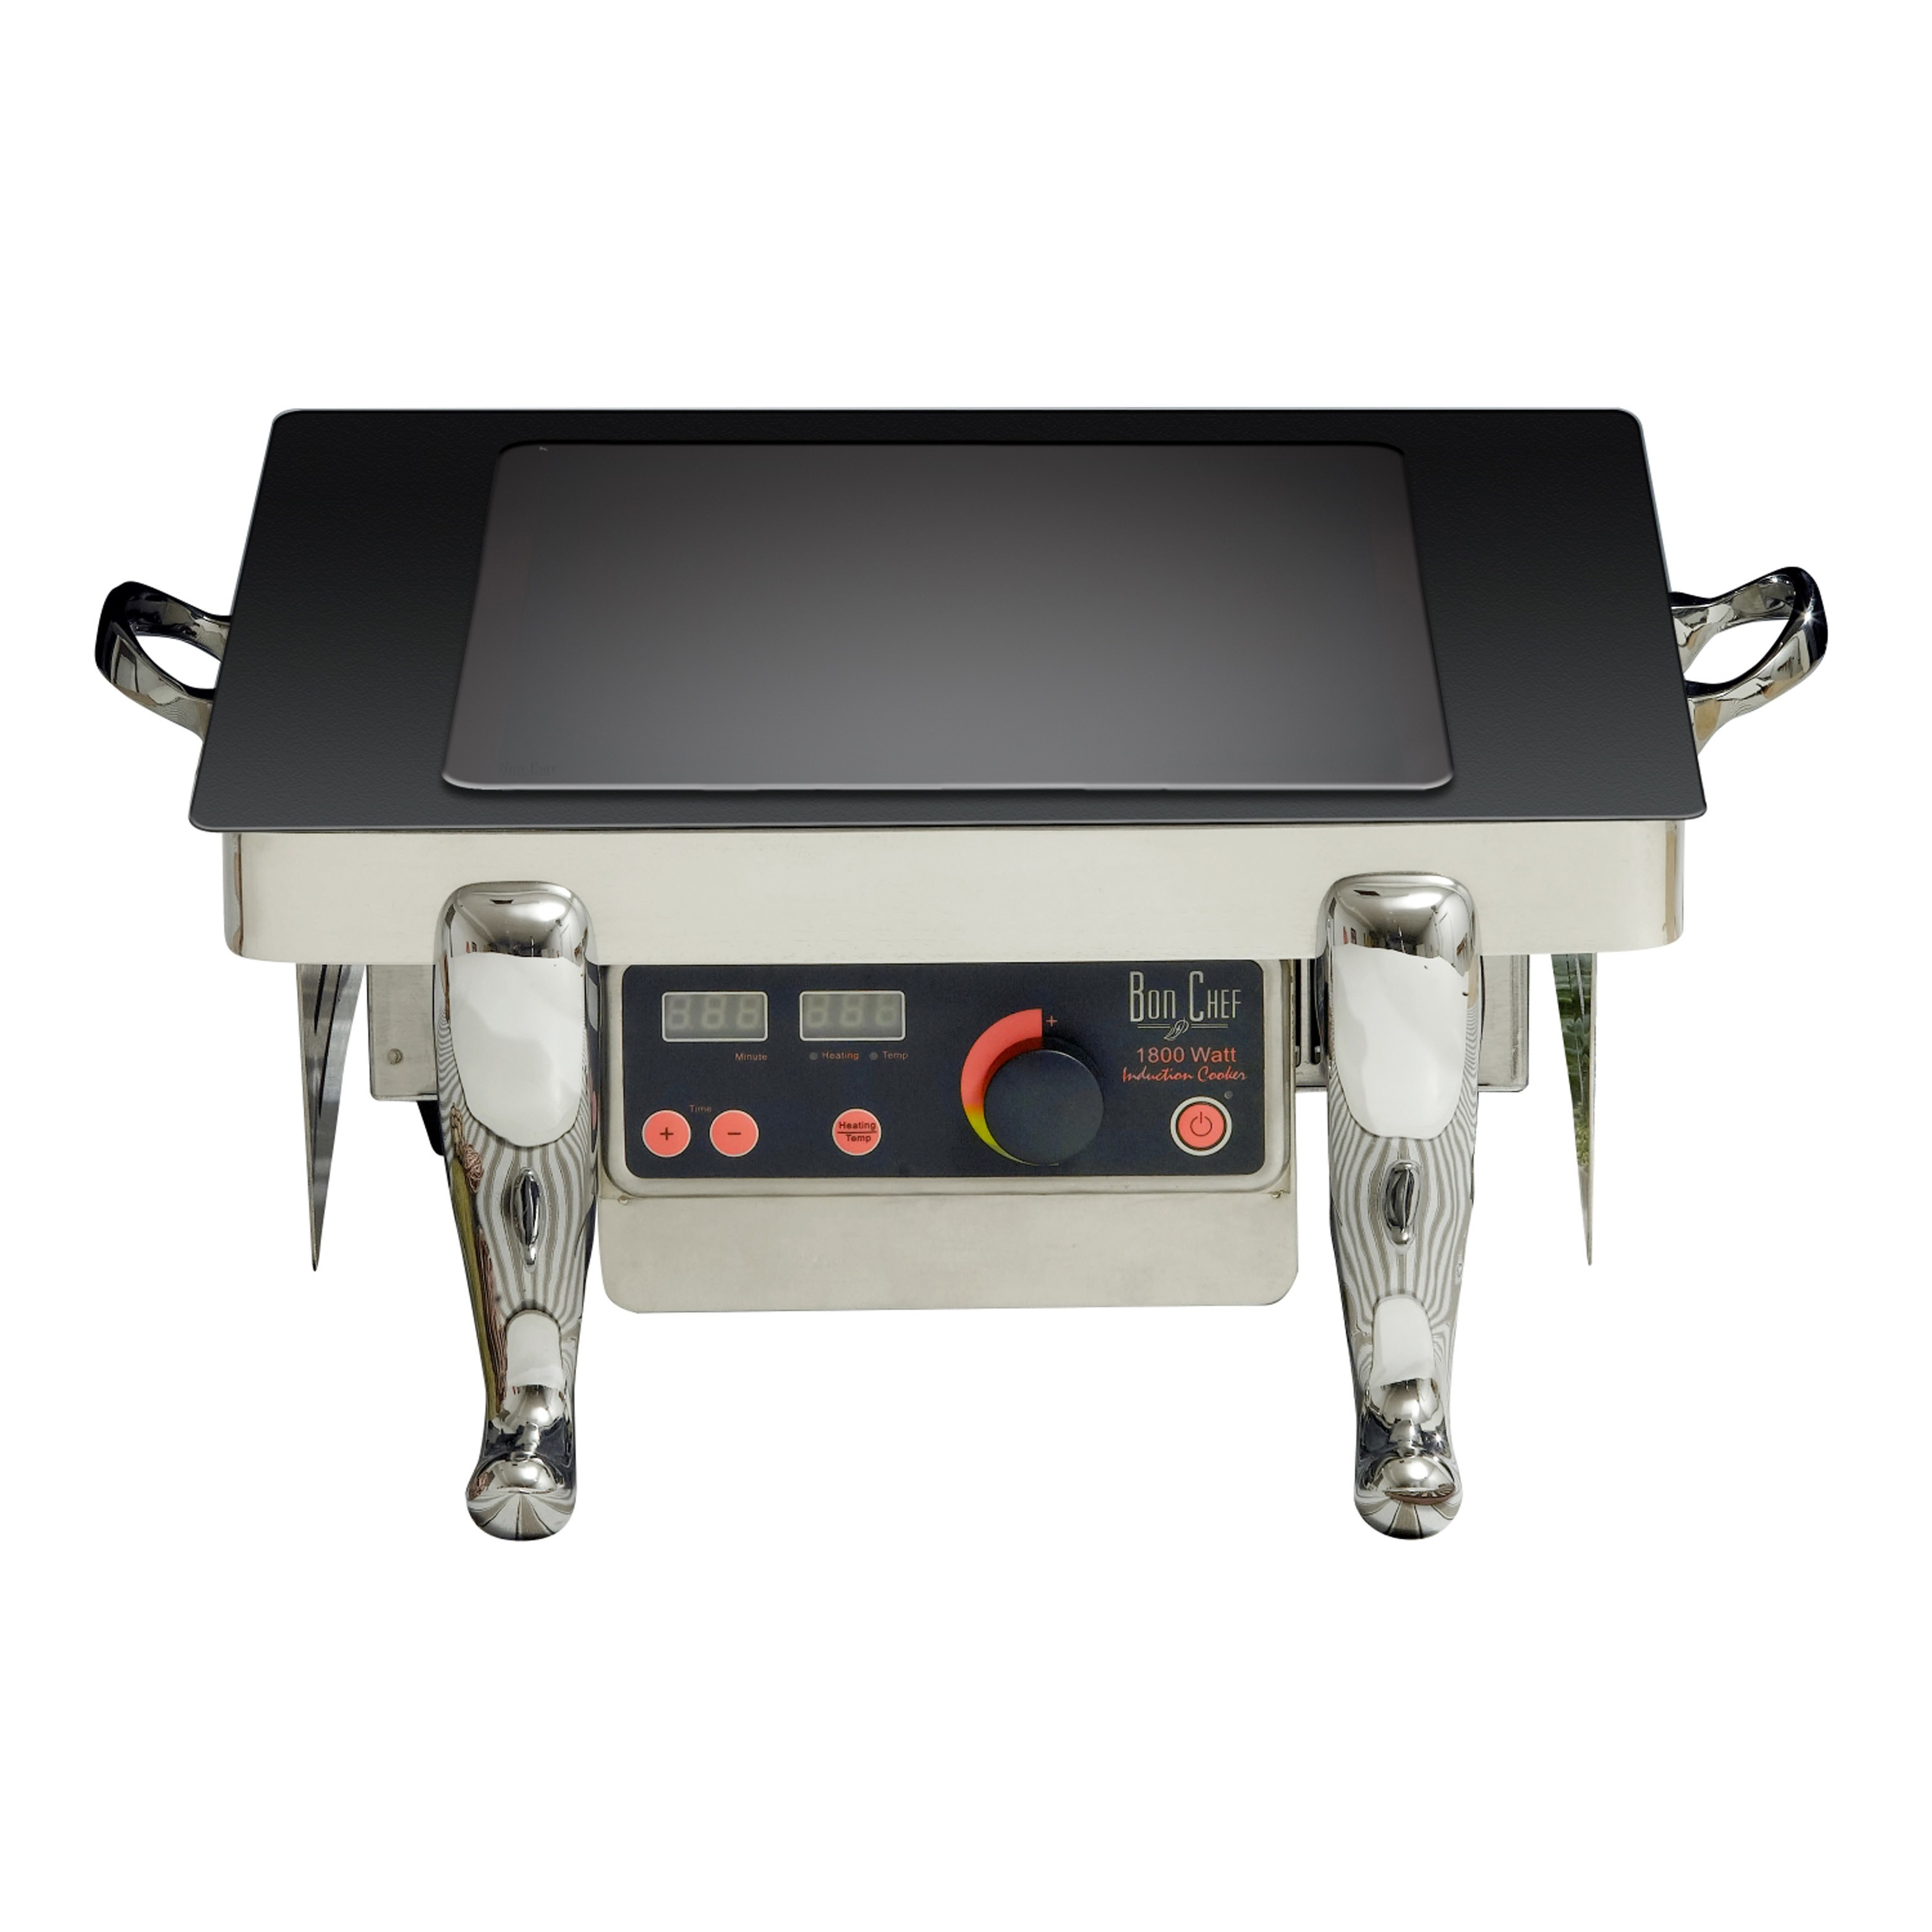 """Bon Chef 50141-1 Portable Cooking Display Stand with Induction Stove, 22"""" x 17"""" x 8 1/2"""""""